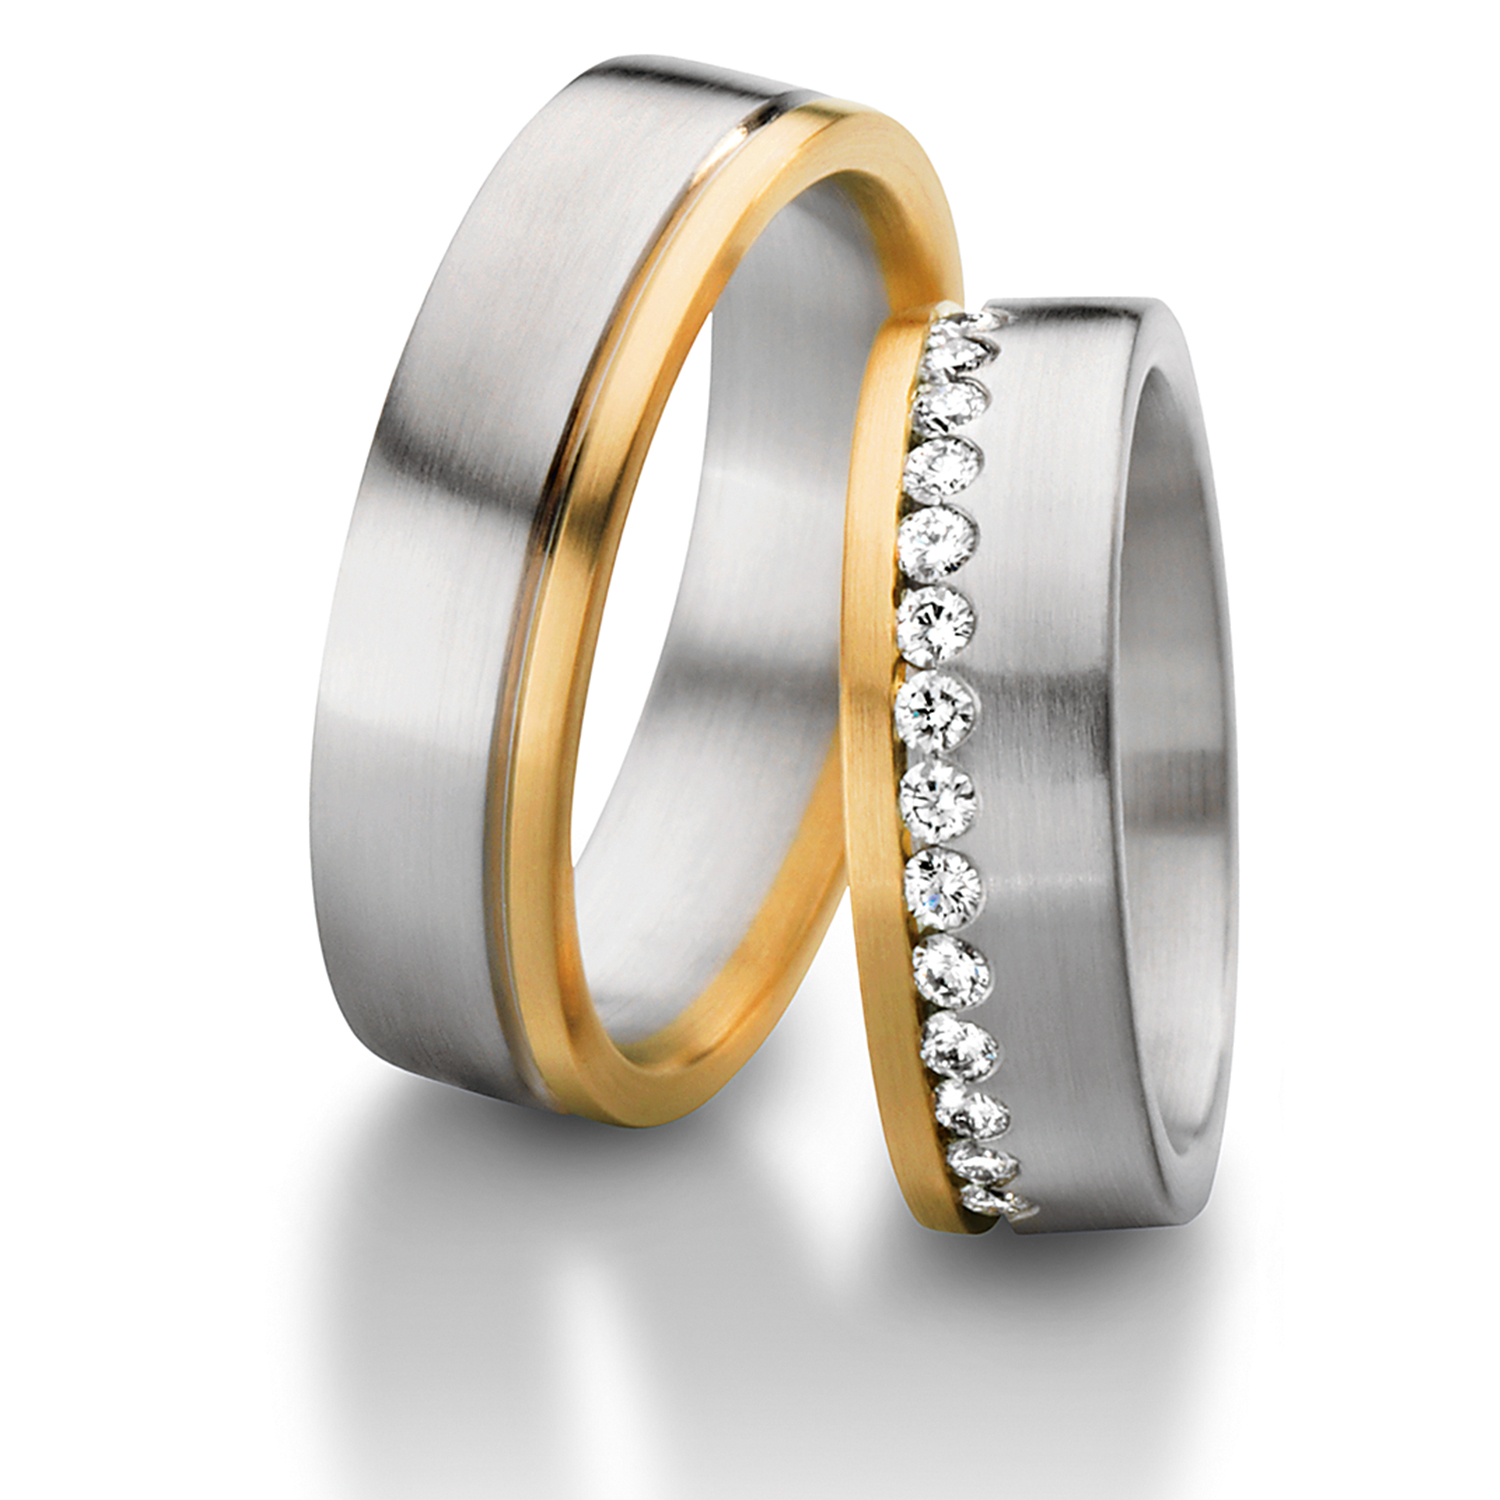 This is a photo of Wedding Multi-colored Wedding Rings white and yellow - Furrer Jacot